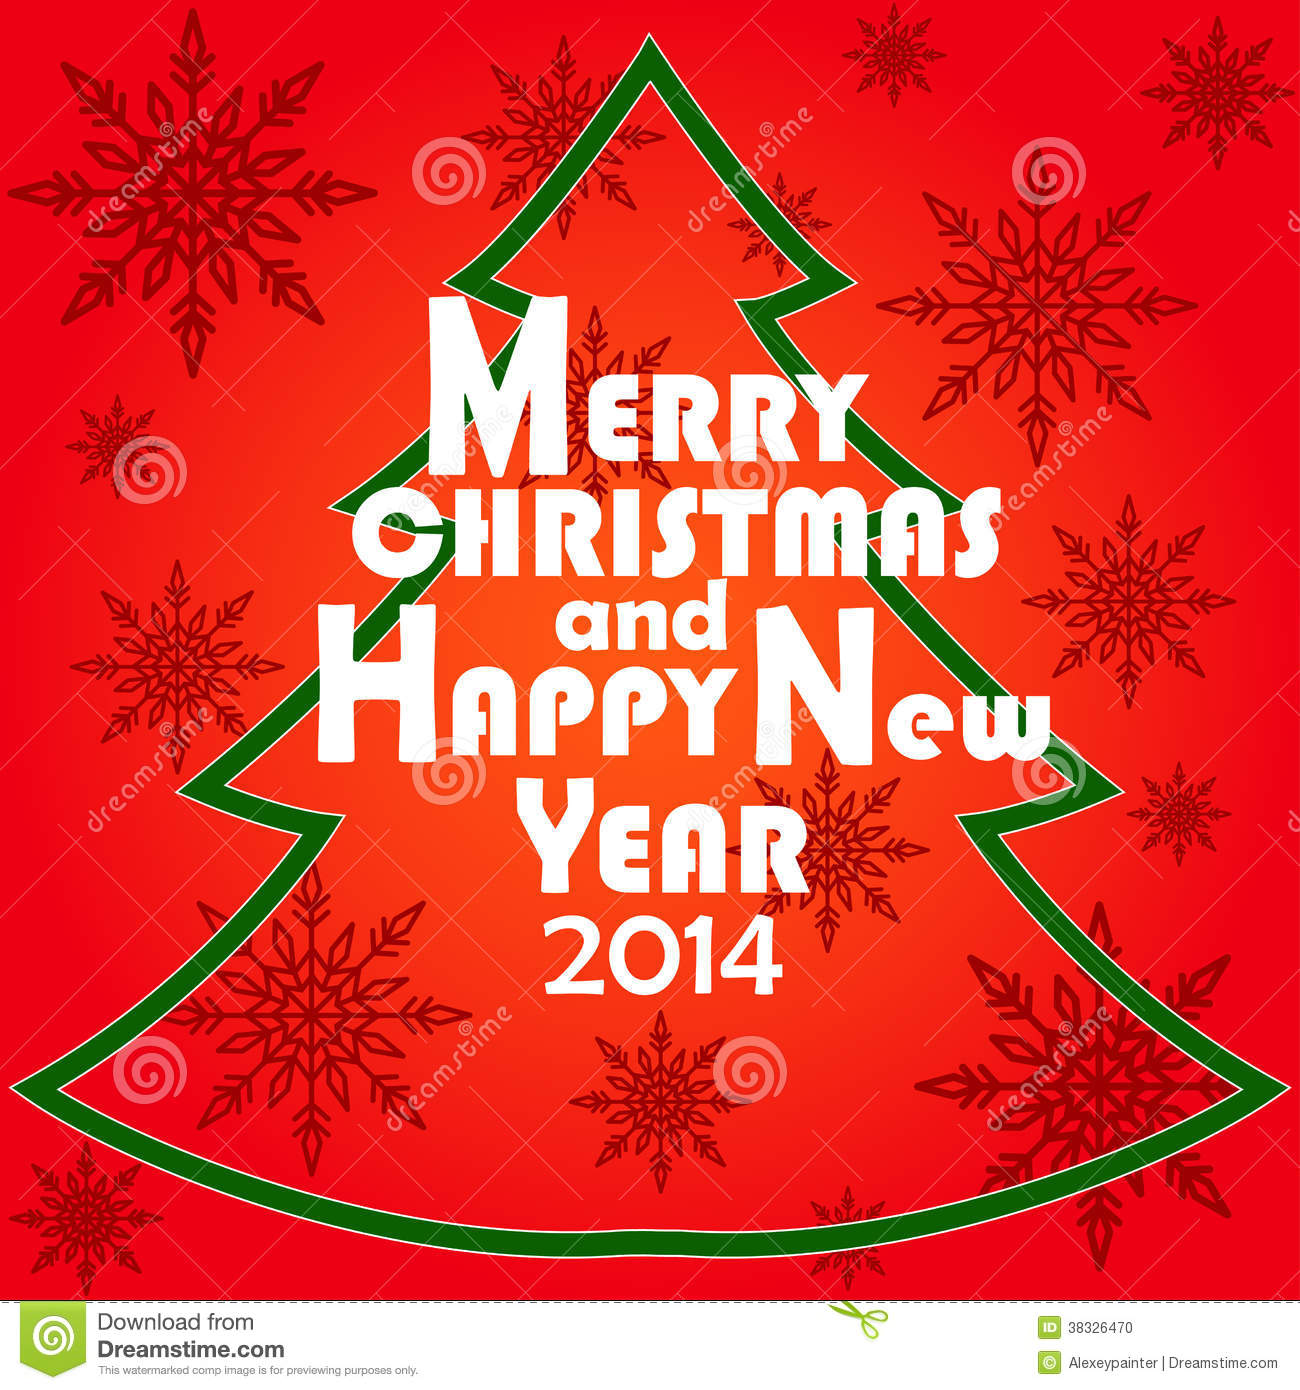 Christmas greeting card merry christmas and happy new year 2014 christmas greeting card merry christmas and happy new year 2014 lettering illustration m4hsunfo